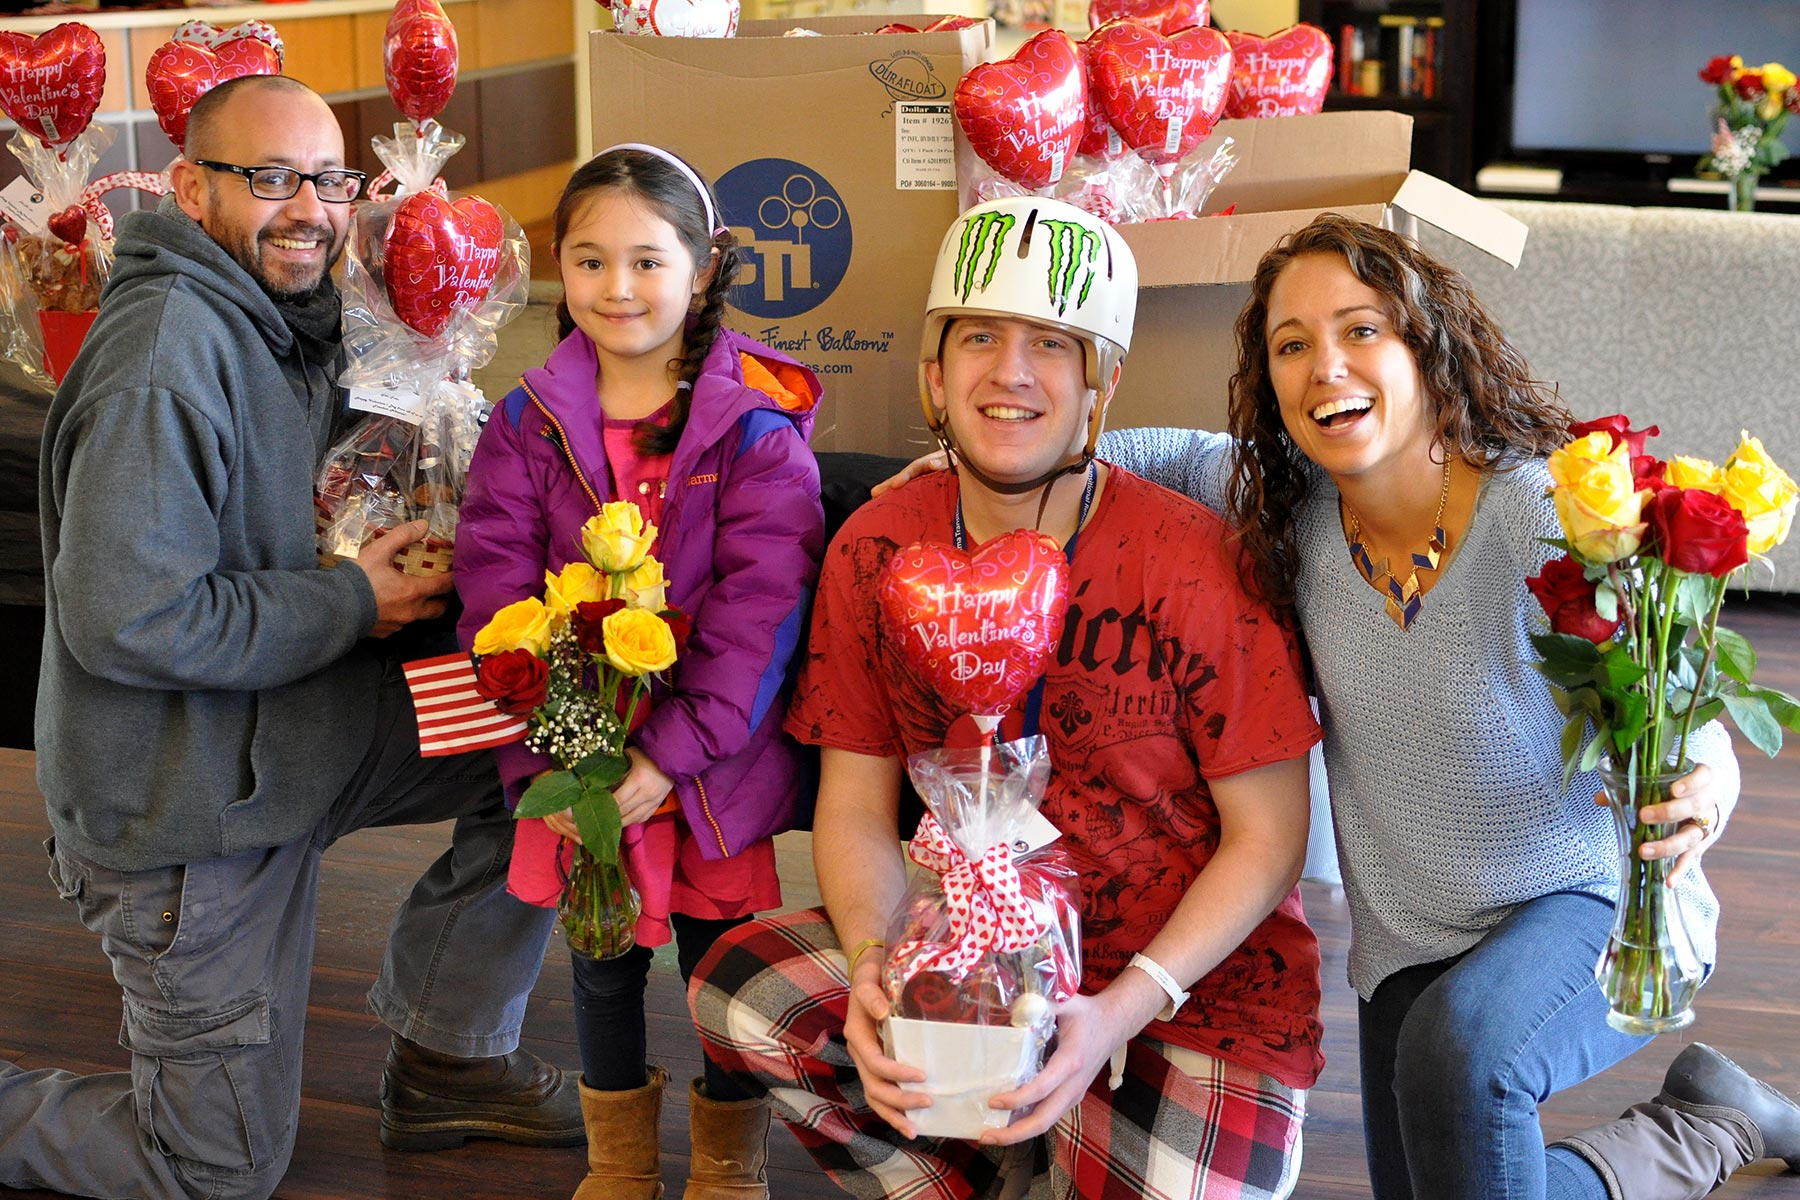 Valentine's day roses for our troops and their families.